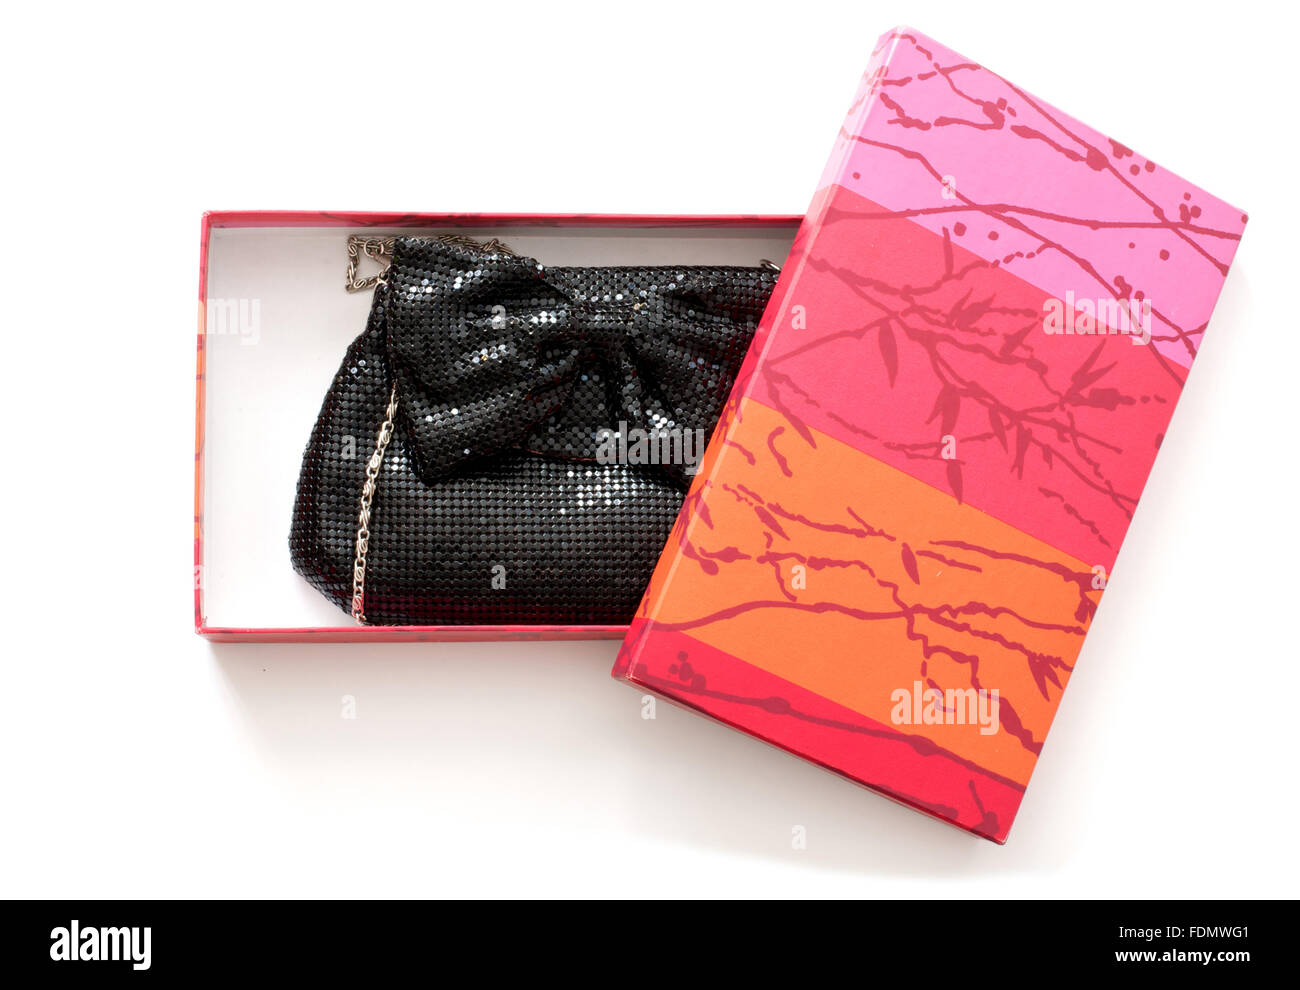 Isolated clutch bag in red and pink gift box over white - Stock Image